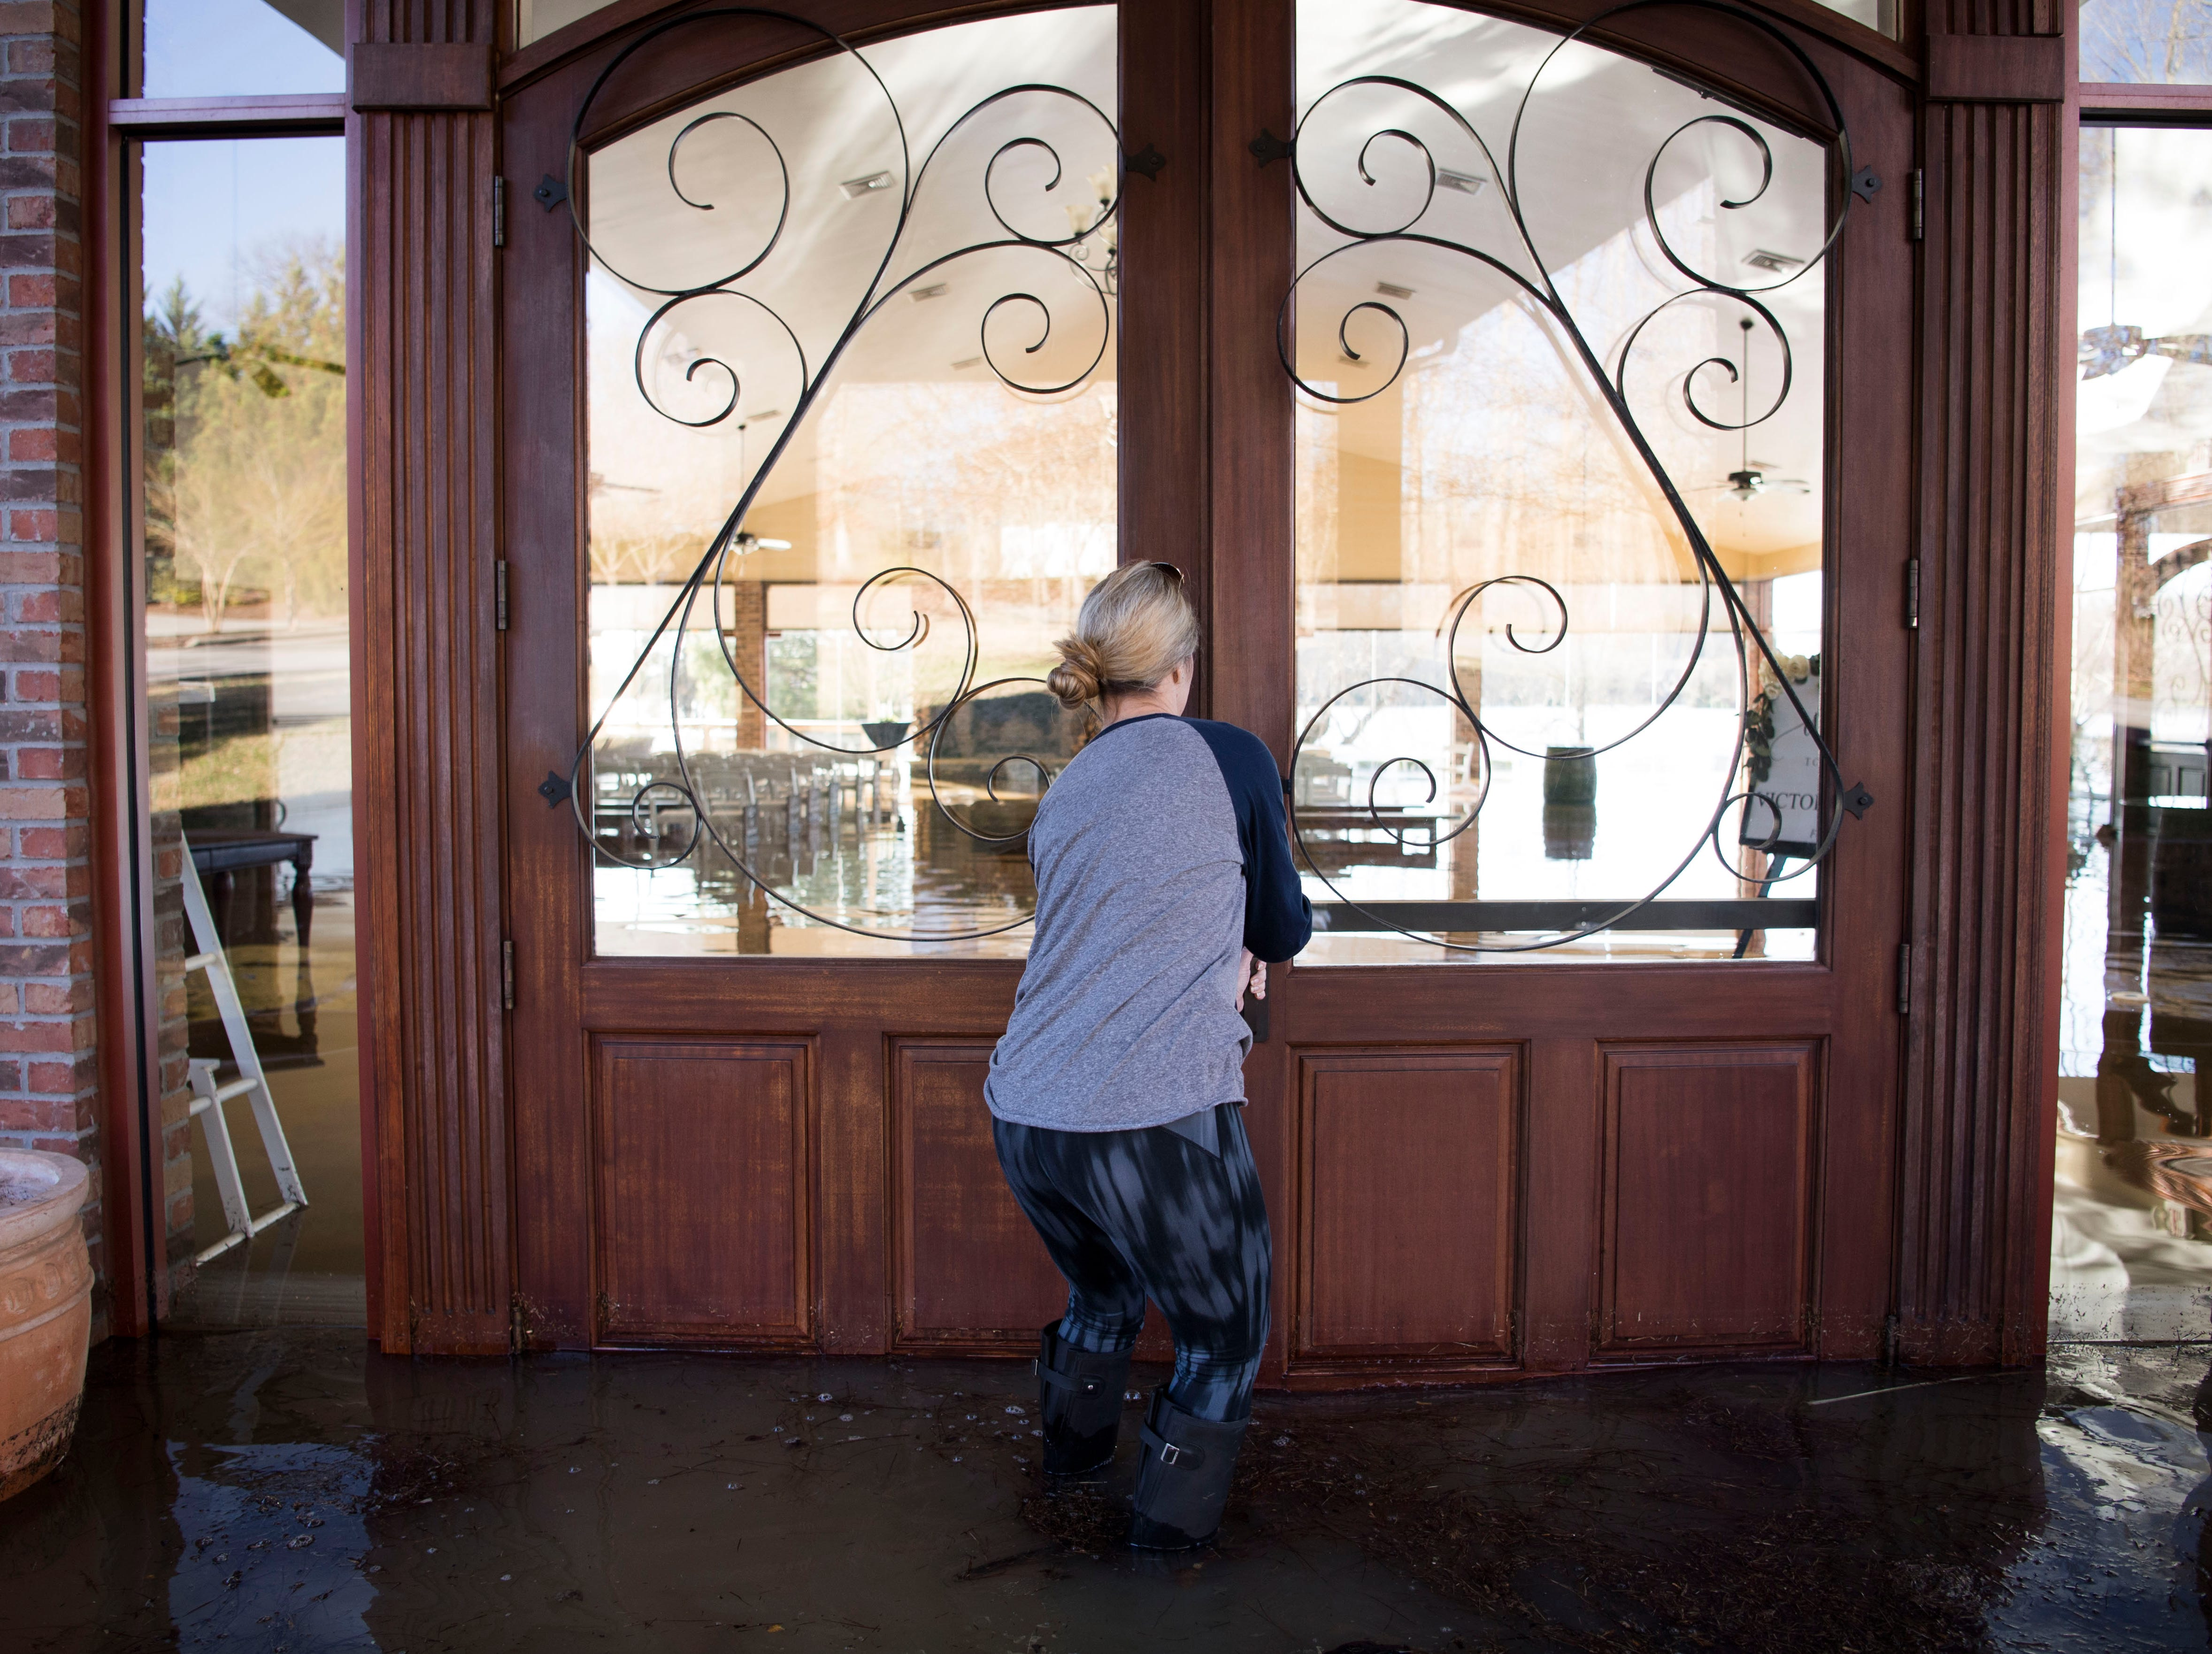 Nacy Barger opens the doors to the pavilion at Hunter Valley Farms, Sunday, Feb. 24, 2019.